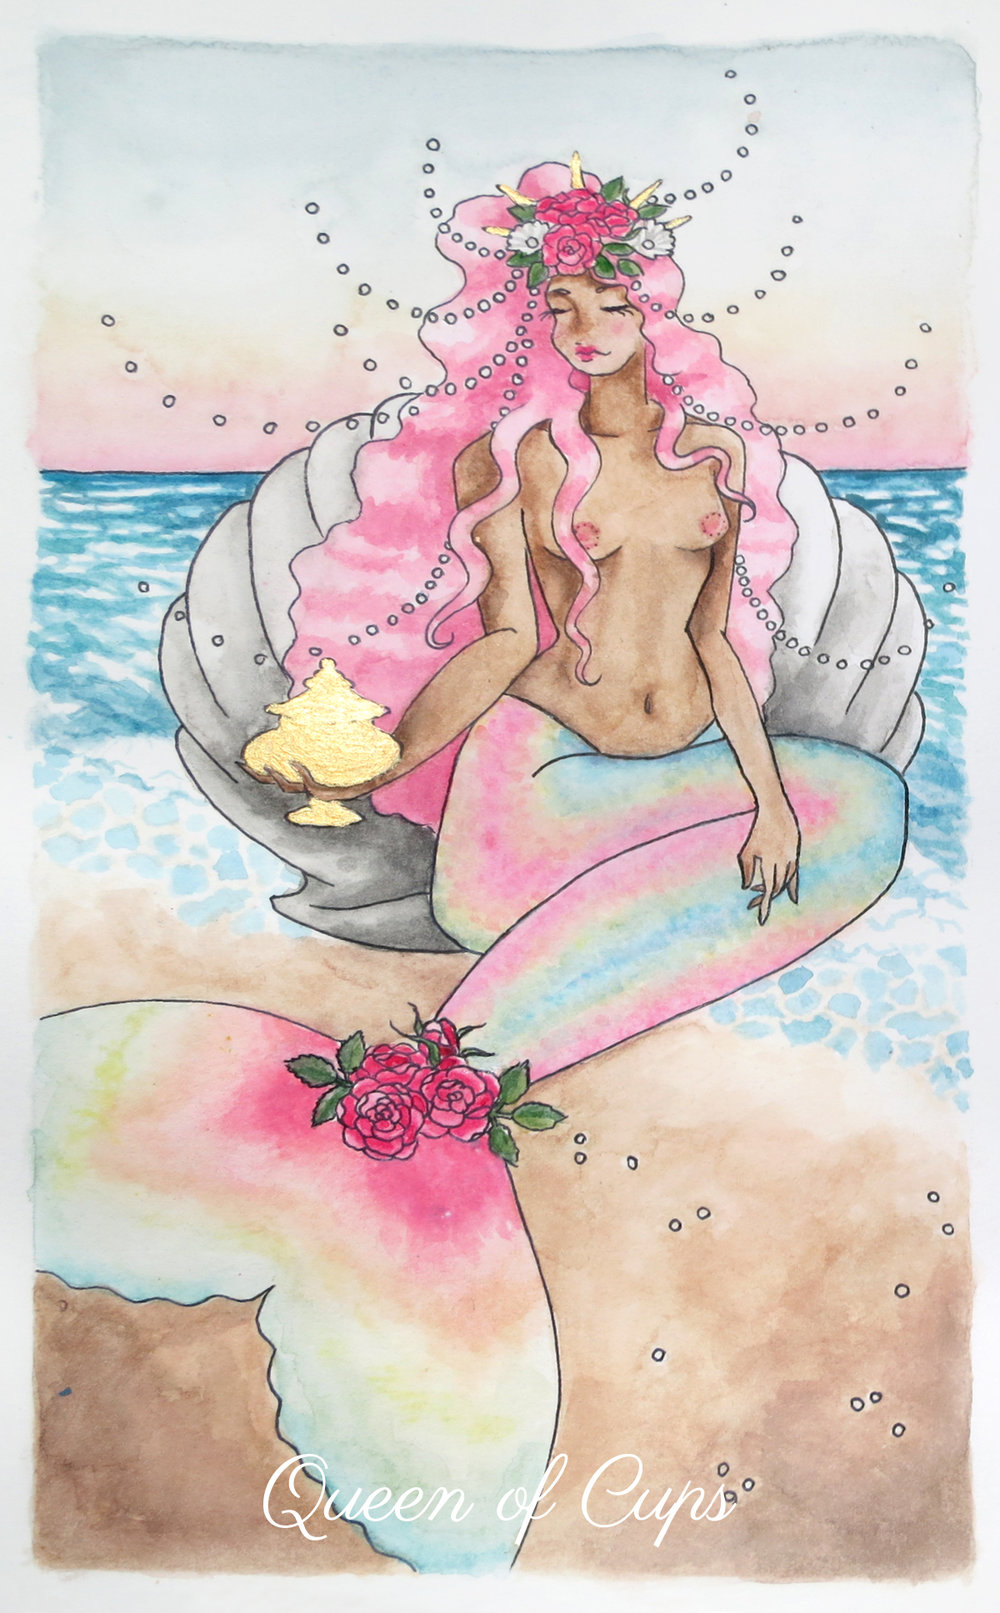 quinne-myers--queen-of-cups-mermaid.jpg